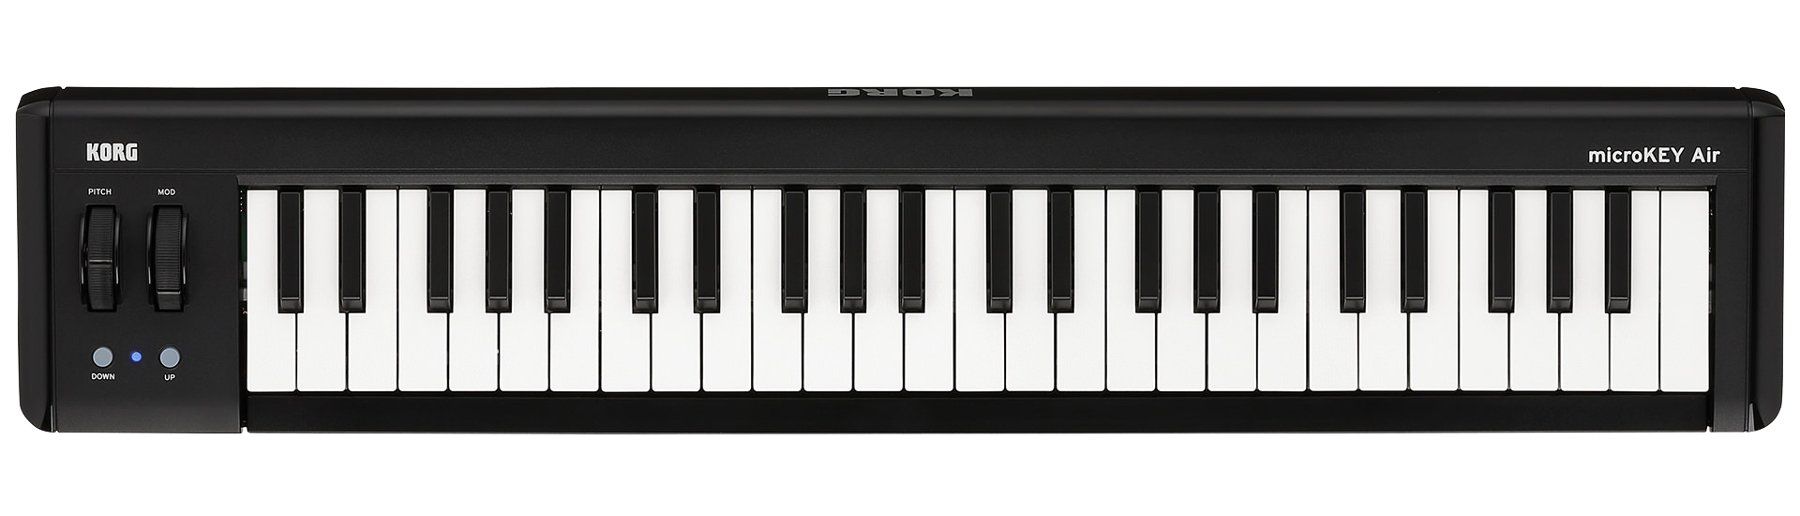 Korg microKEY Air-49 49-Key Bluetooth and USB MIDI Controller MICROKEY-AIR-49